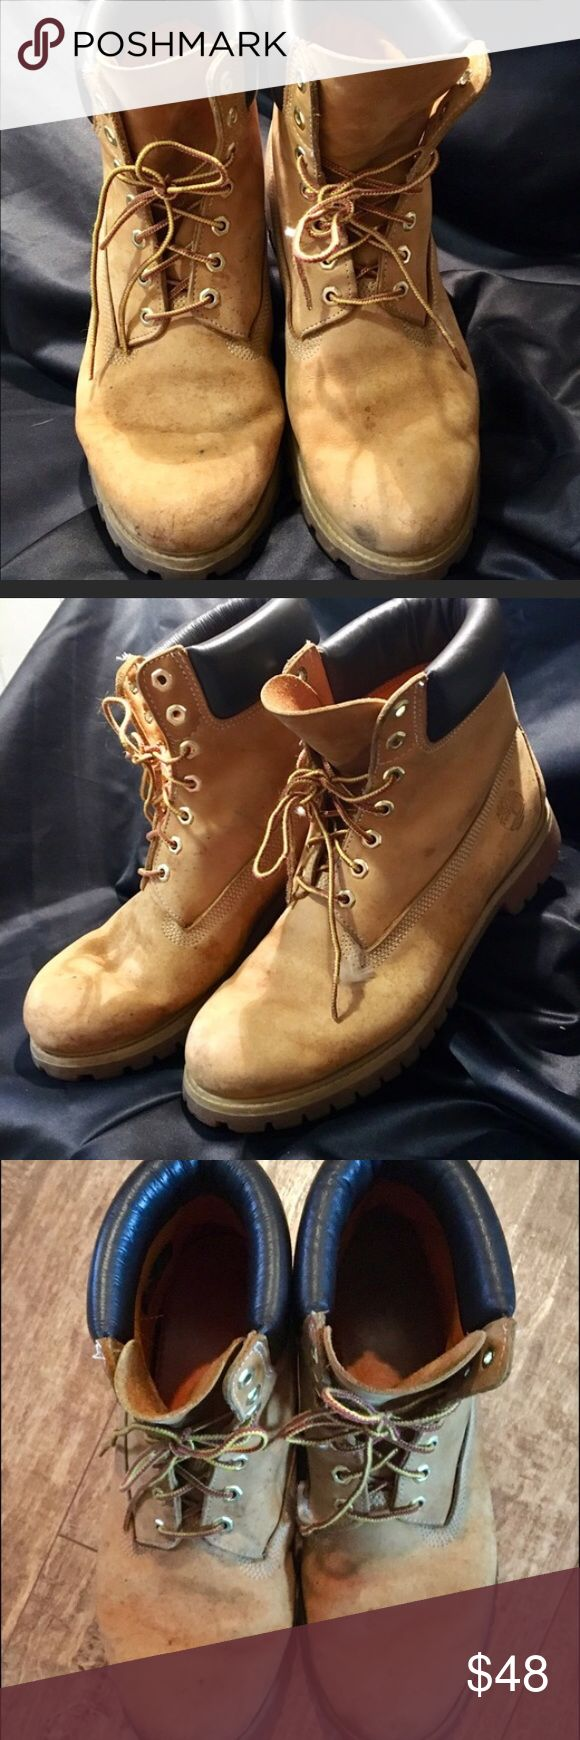 "Timberland Classic 6"" Prm Size 11.5 Wheat Nubuck. Classic leather nubuck wheat 6"" waterproof Timberland boots. Some scuffs but still in great condition.  Size 11.5 men's Timberland Shoes Boots"